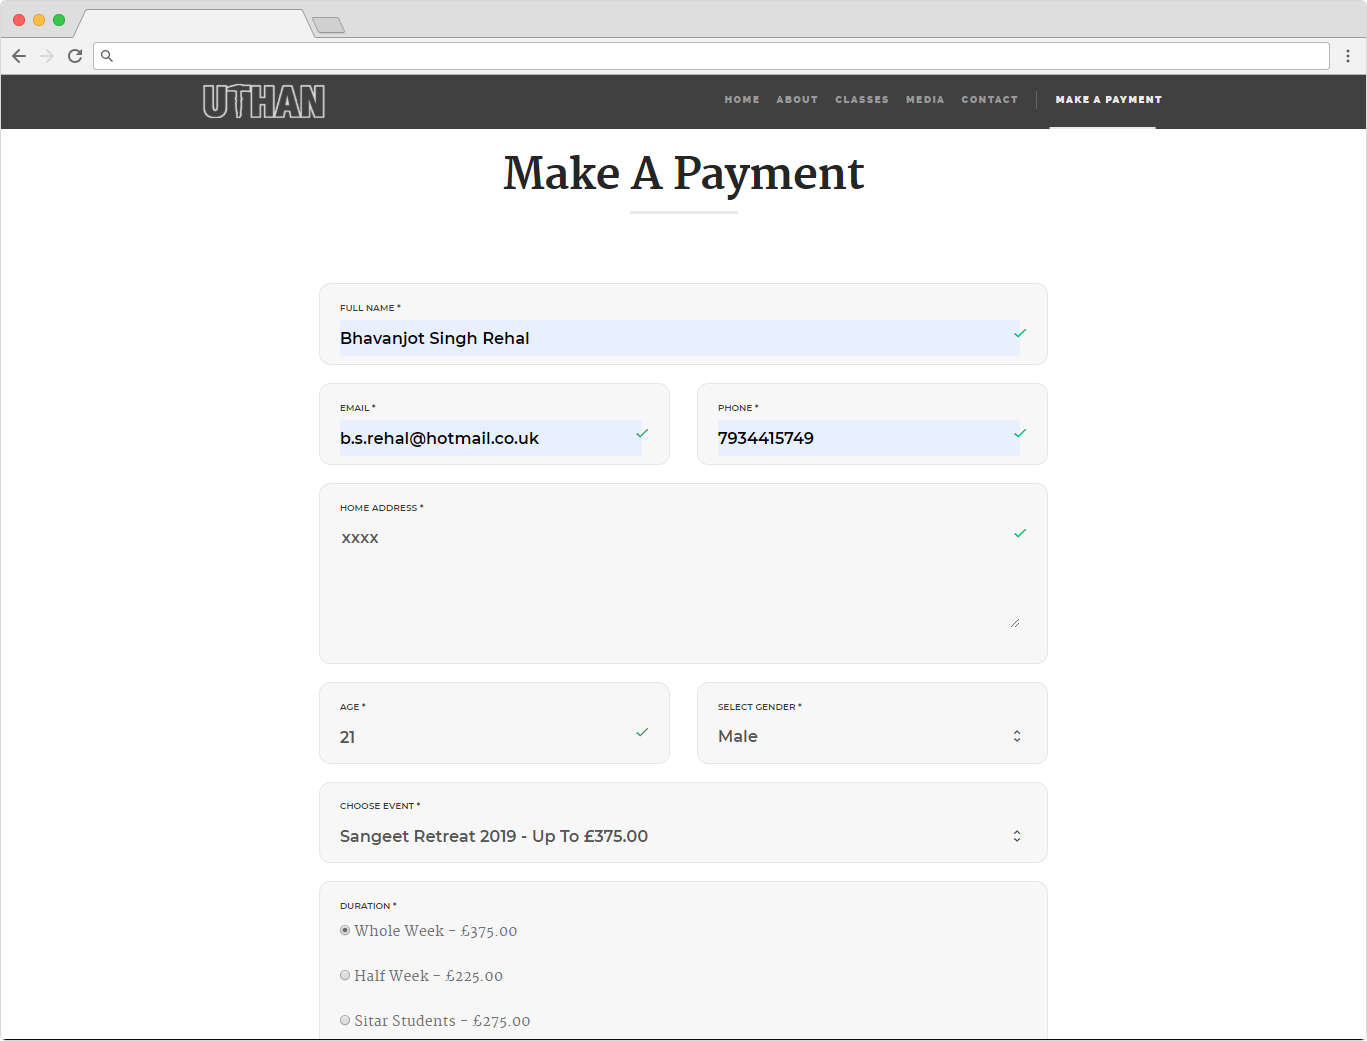 Uthan - How To Pay